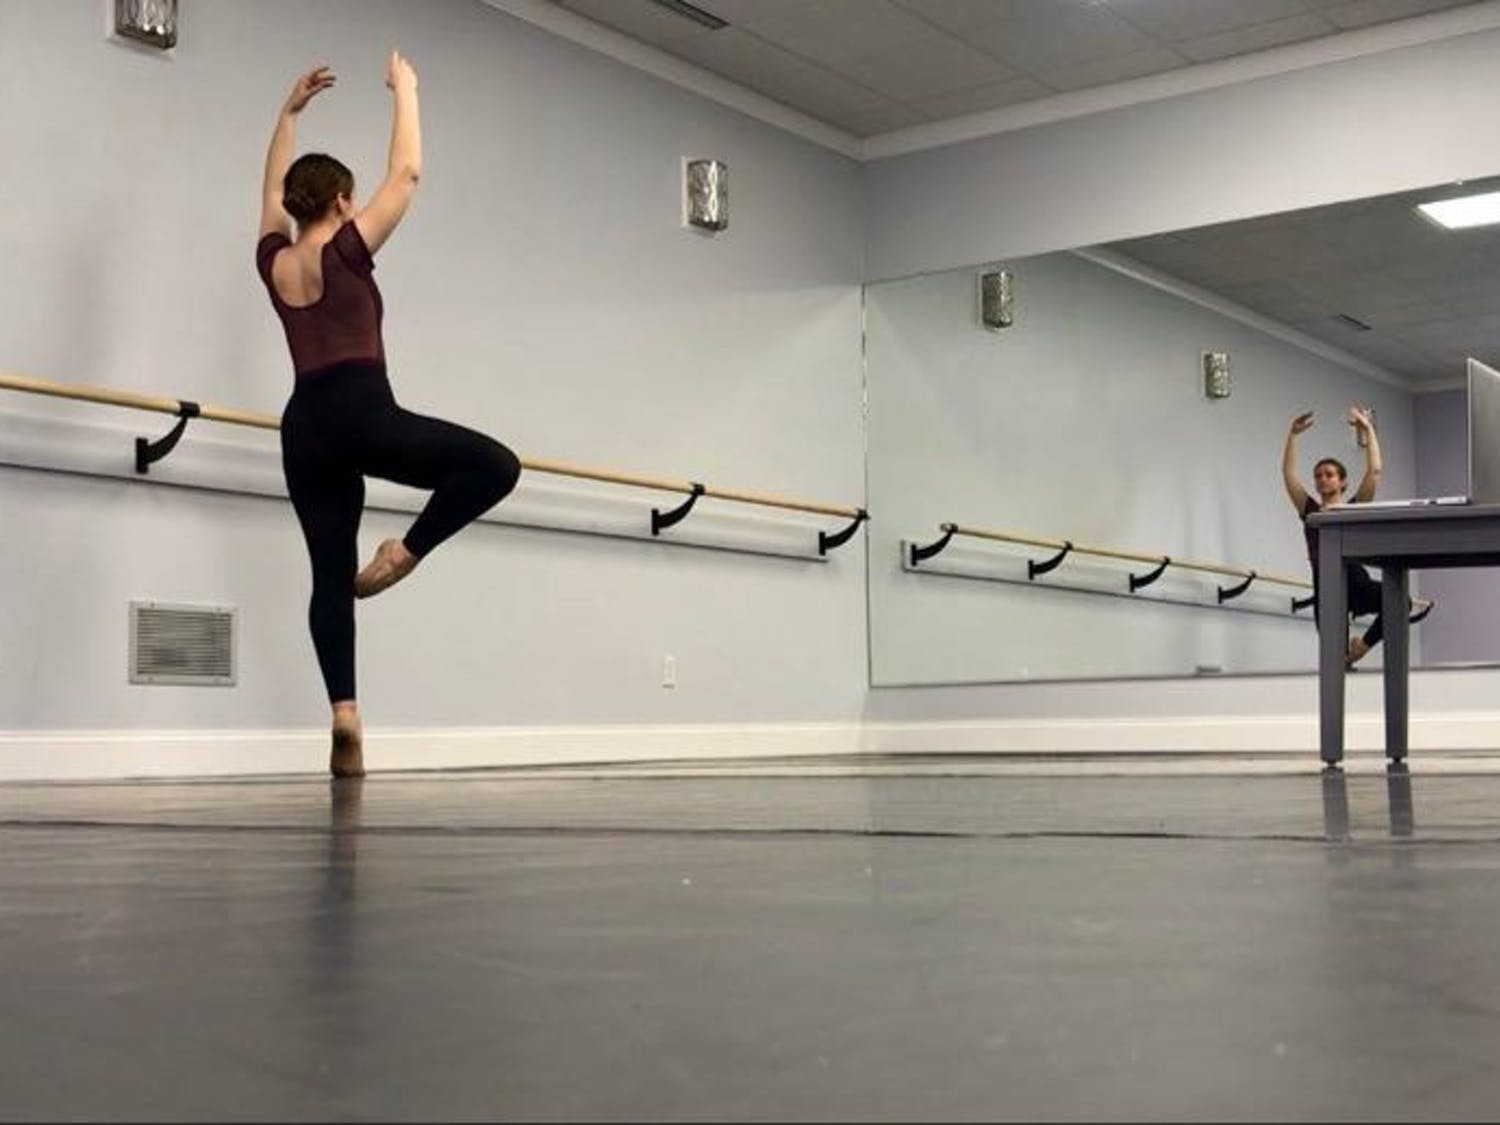 Sophomore dance major Kelsey Wegman practices her craft alone in her own studio.